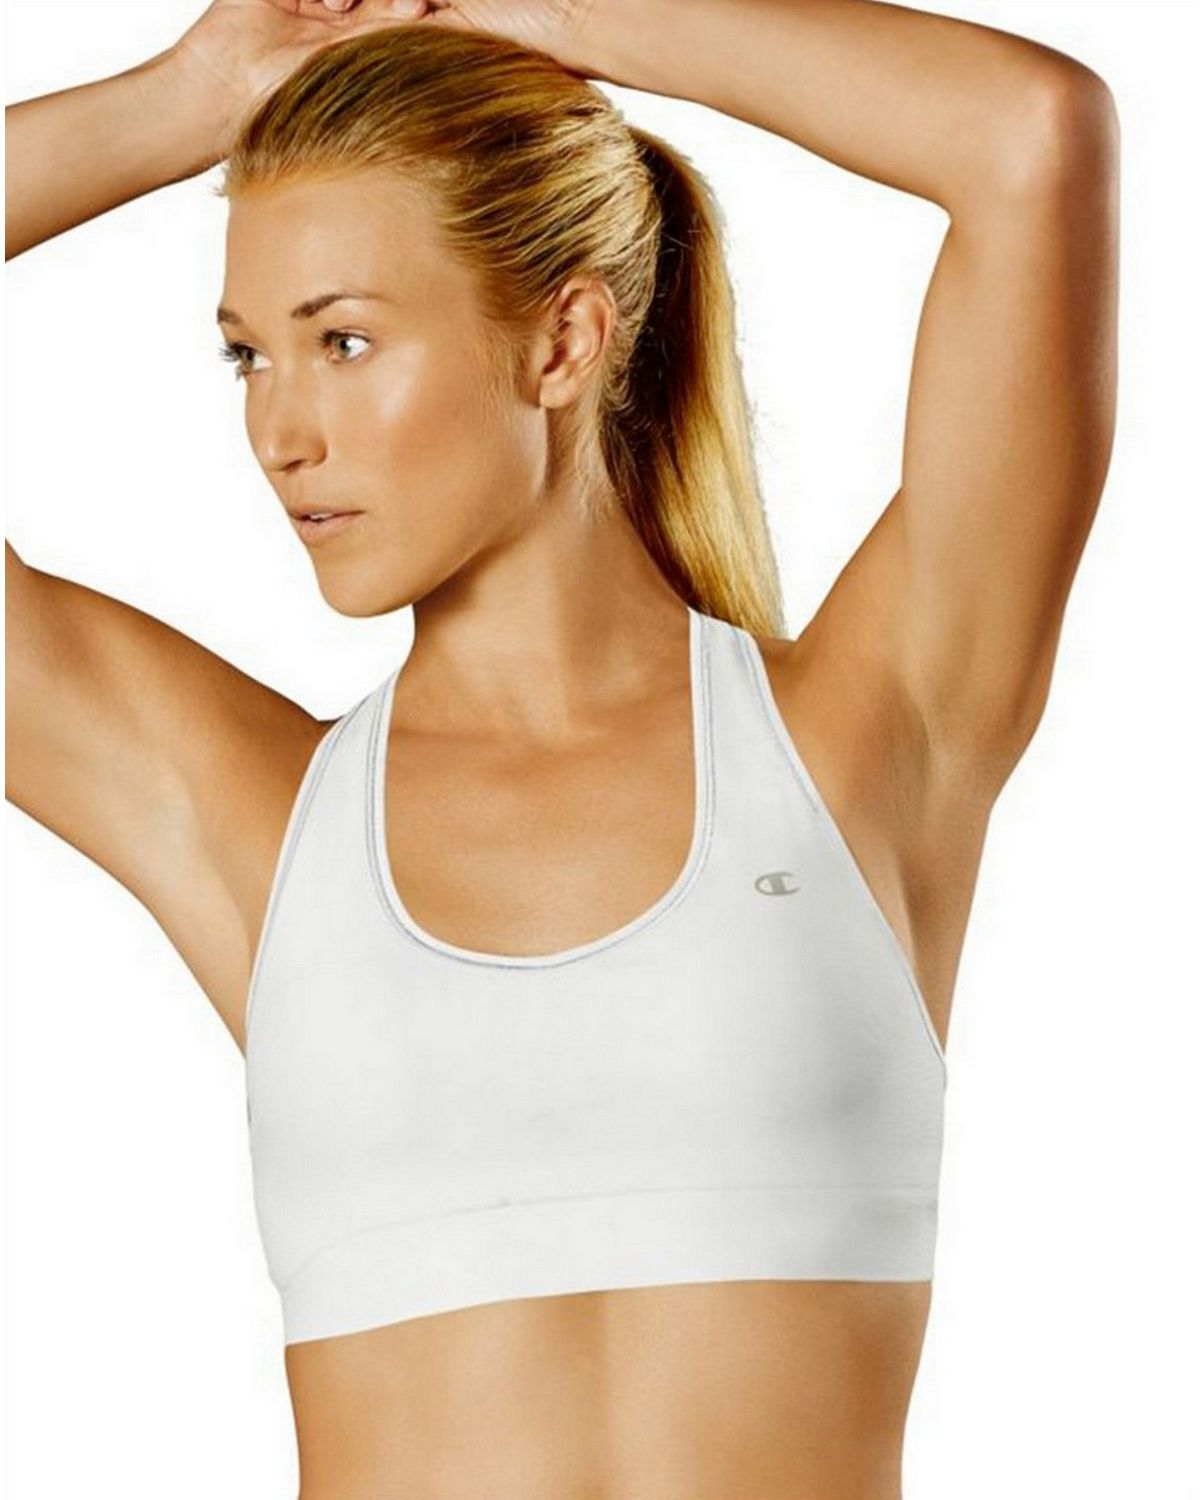 Champion B9504 Absolute Racerback Sports Bra - White - XL B9504